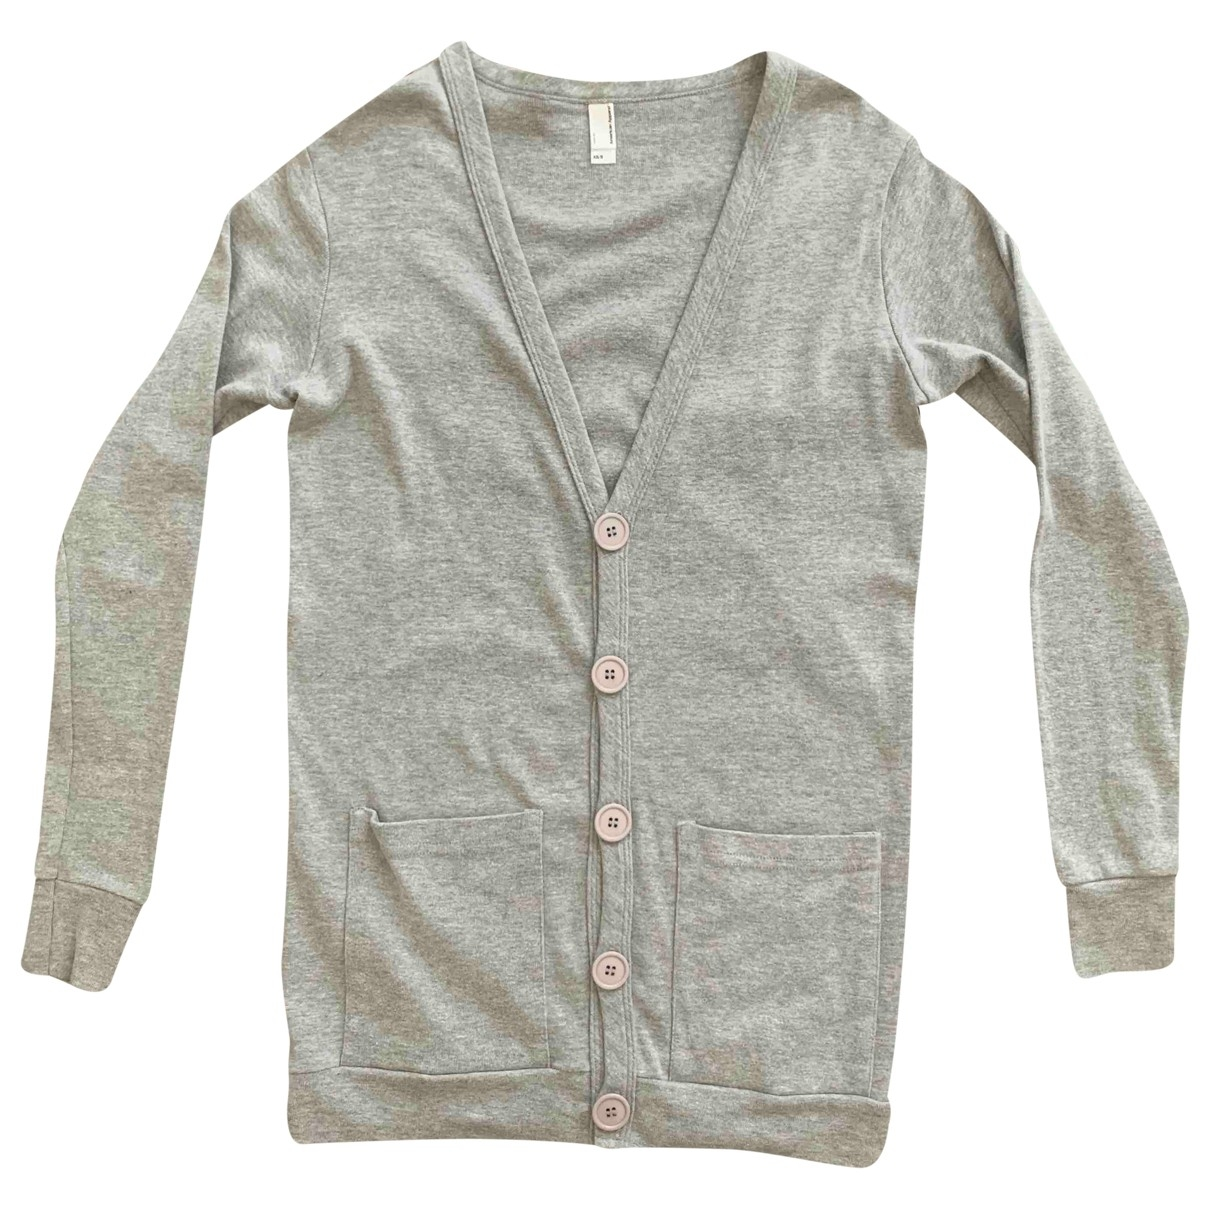 American Apparel \N Grey Cotton Knitwear for Women S International